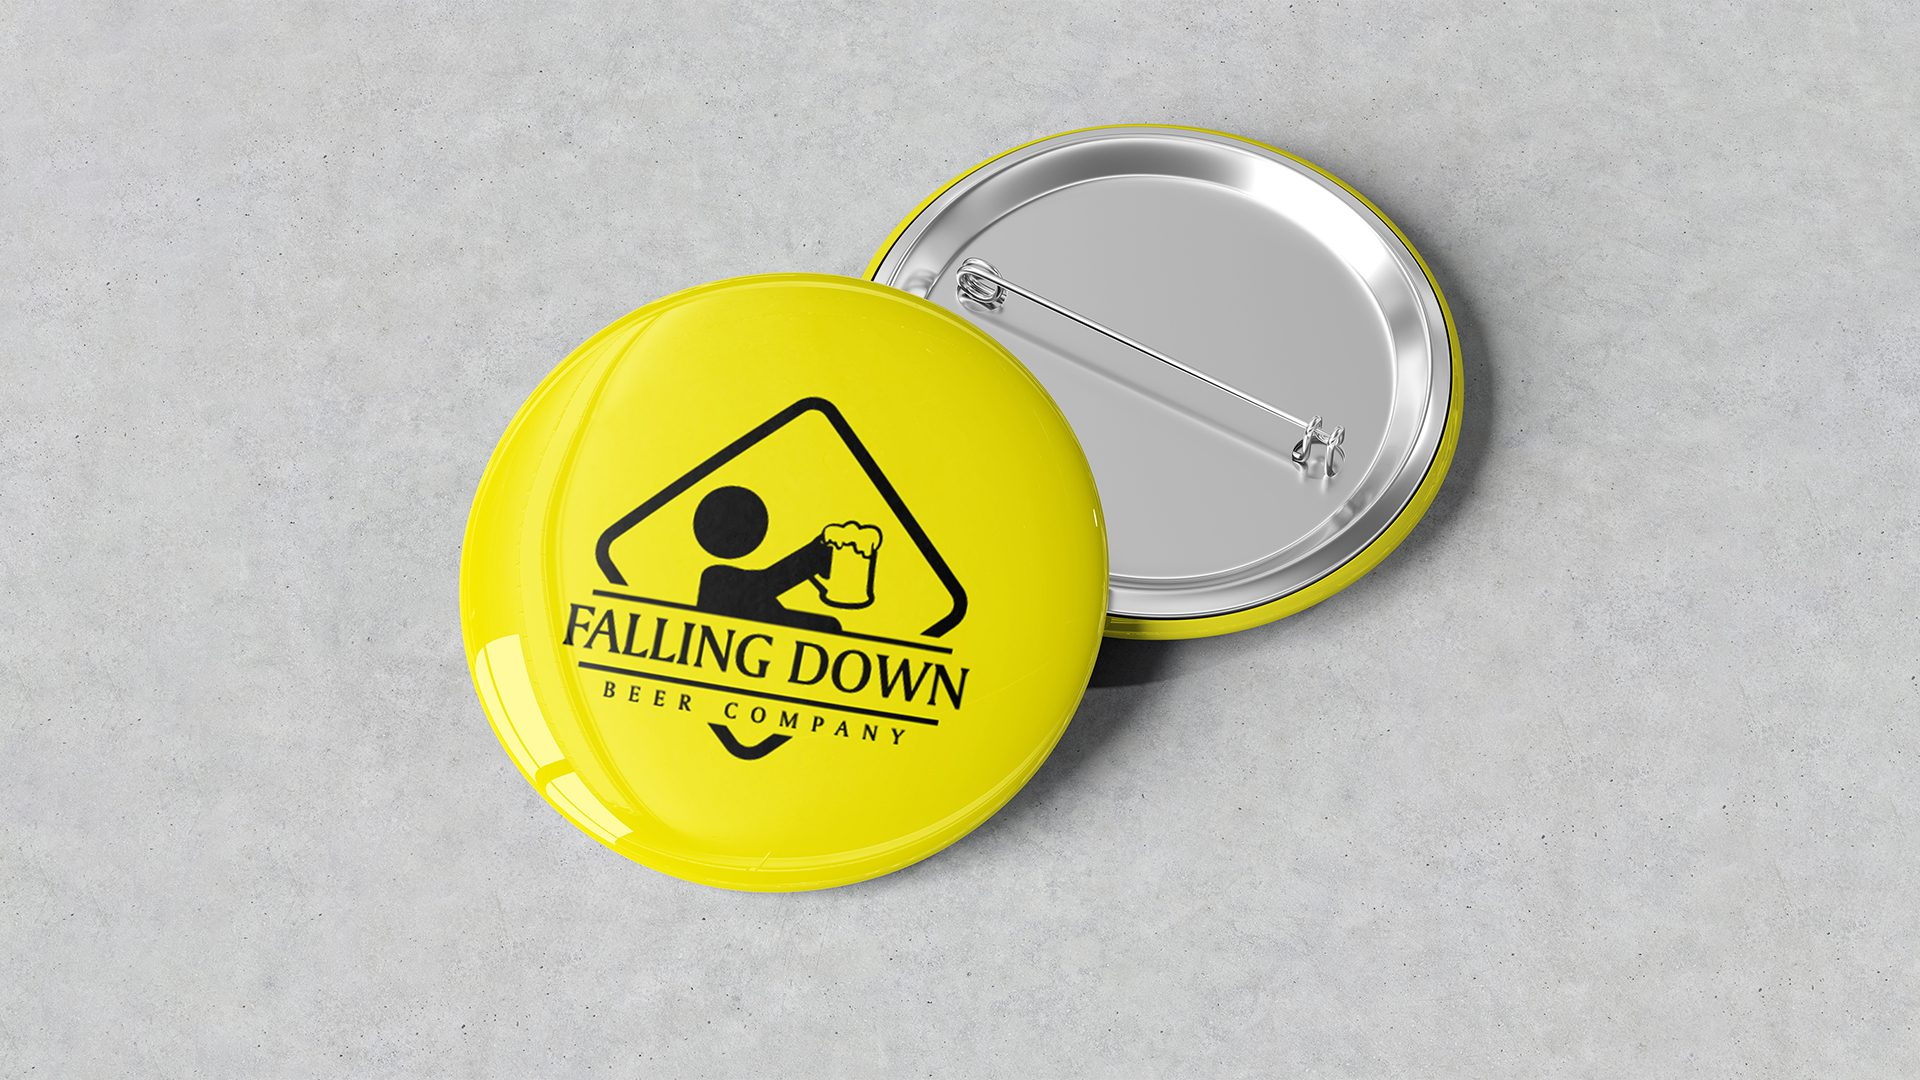 Falling Down Beer – Pins Mockup 01